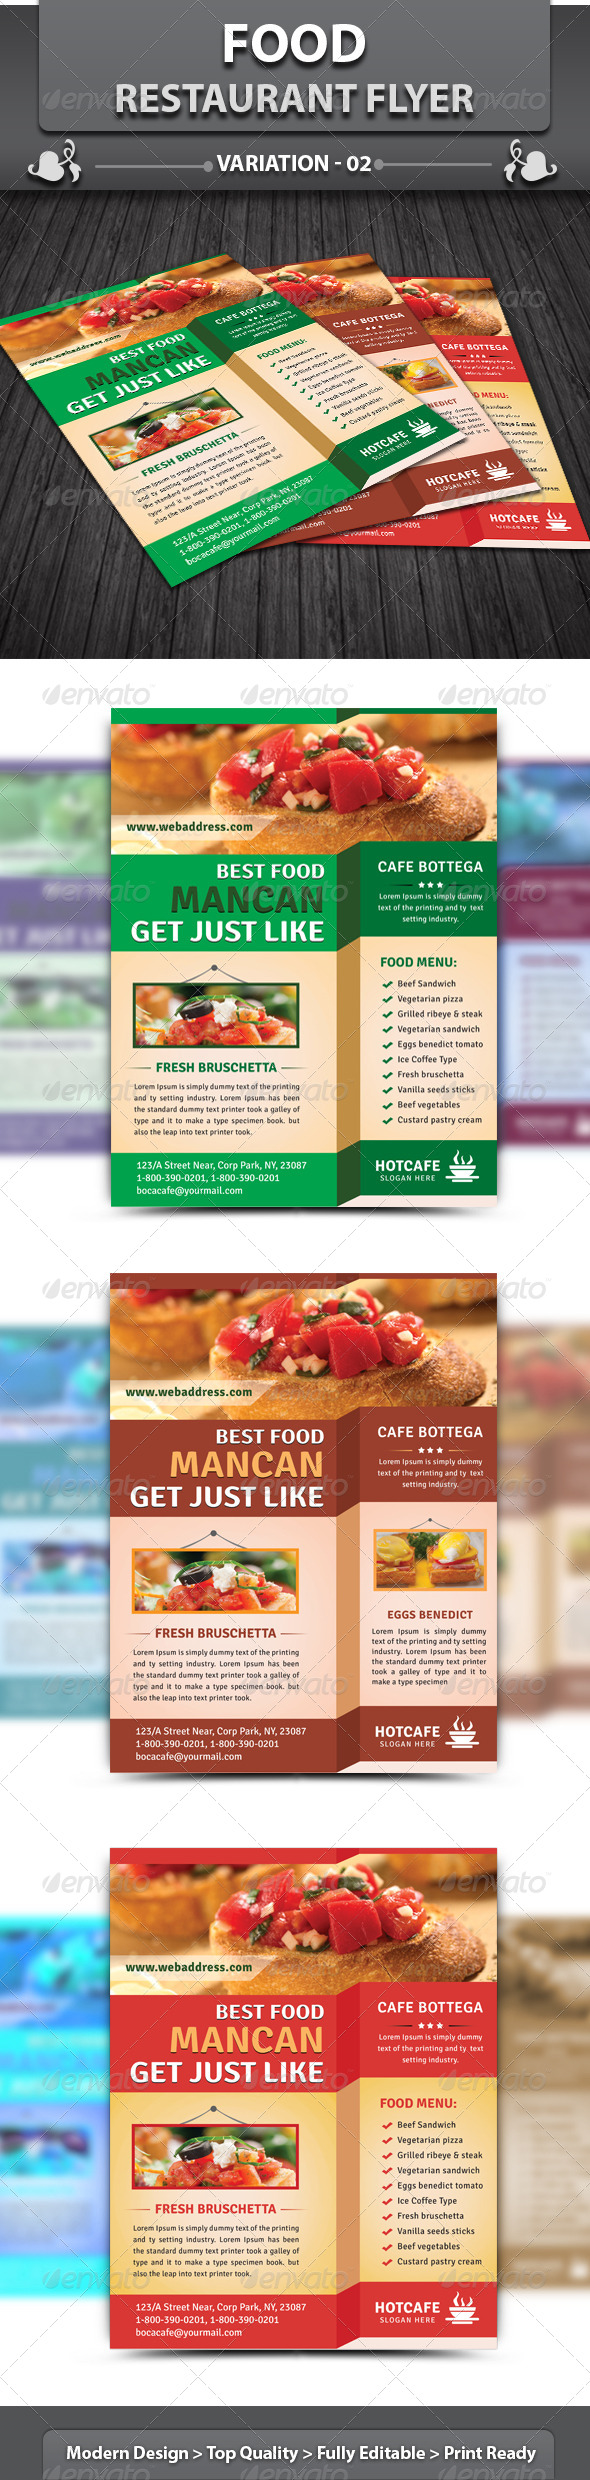 GraphicRiver Food Restaurant Flyer 4557982